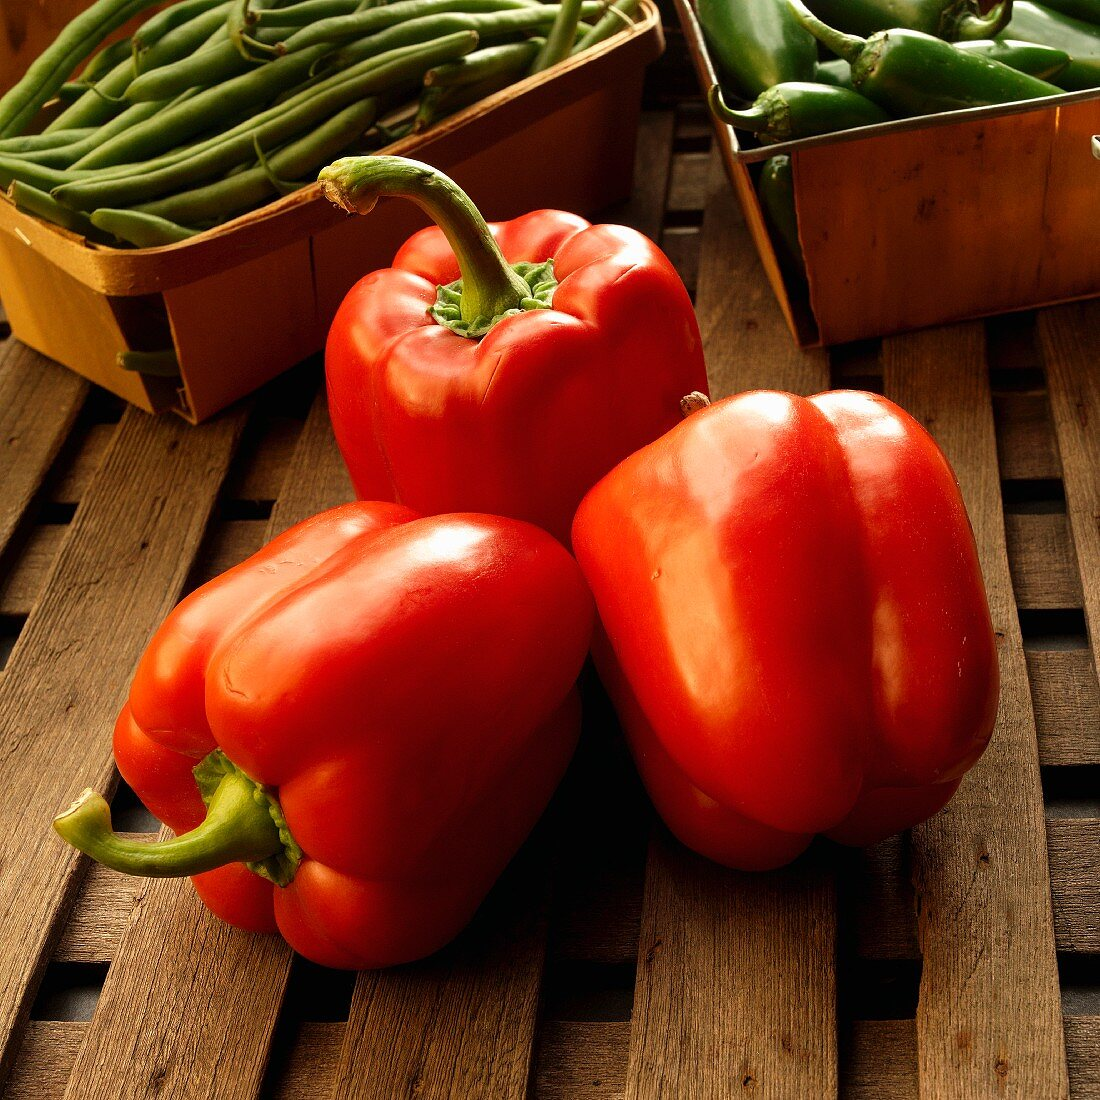 Organic red peppers, string beans and chilli peppers at a farmers market